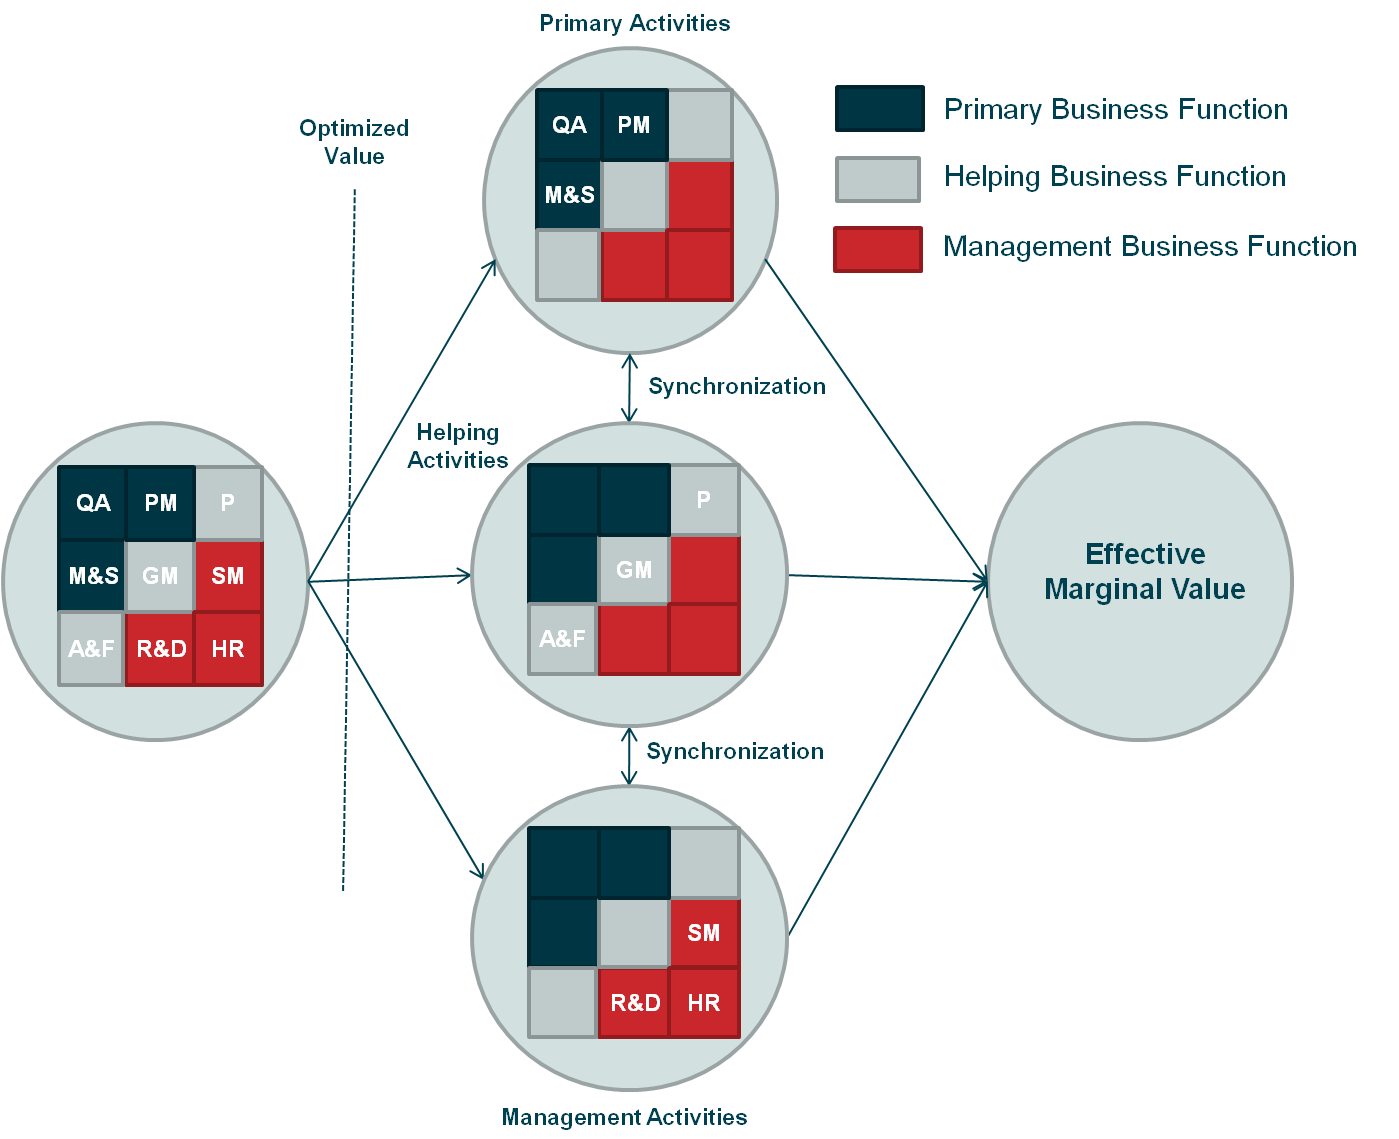 Mapping of Porter's value chain activities into business